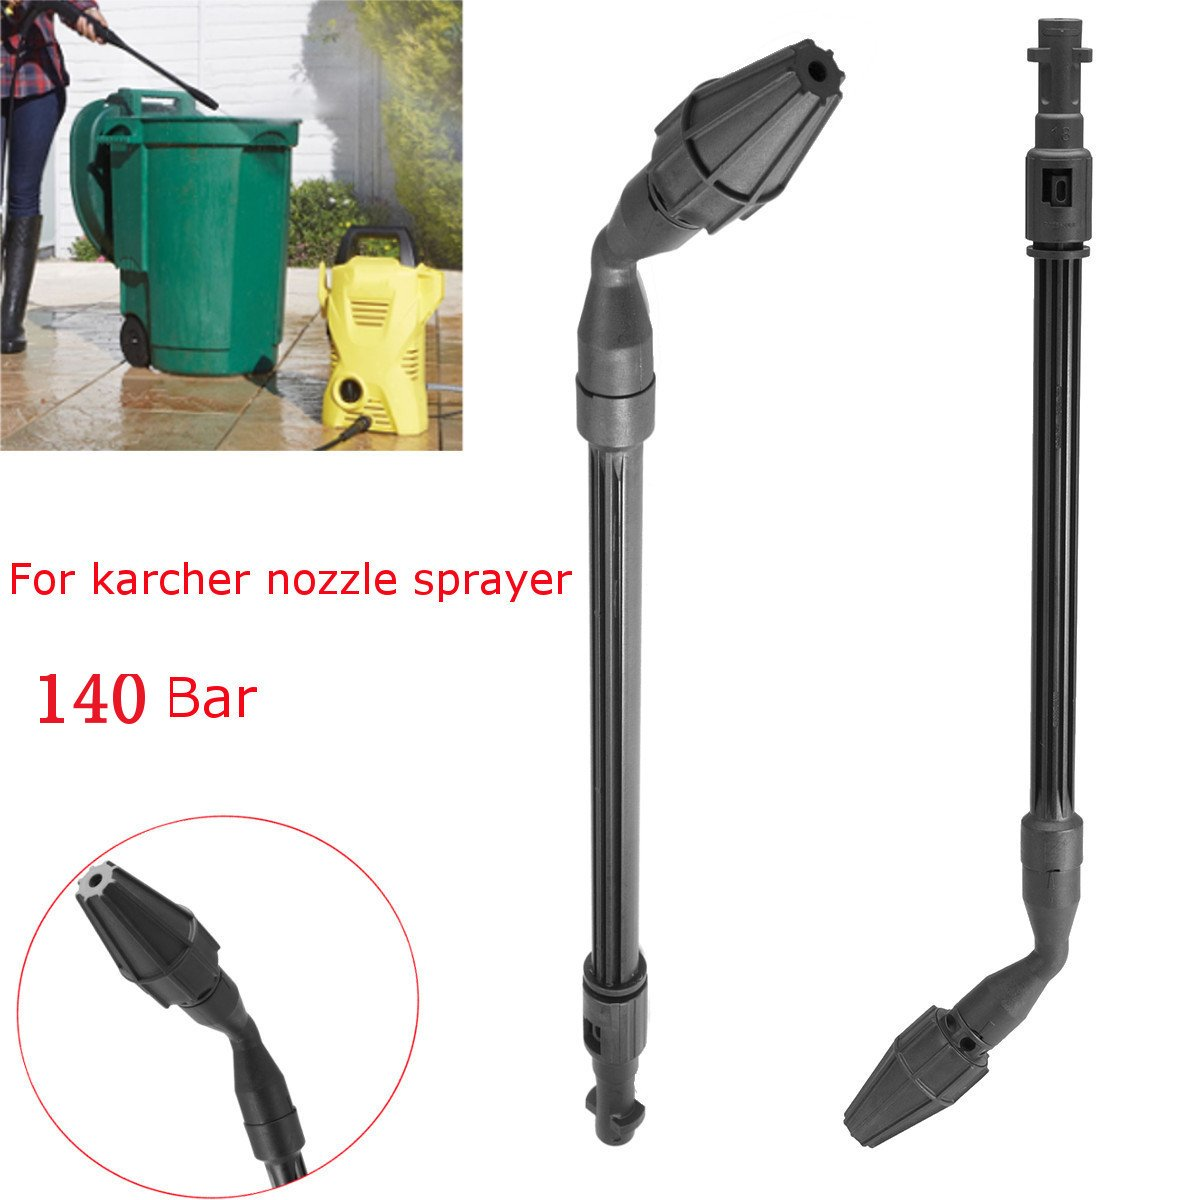 SAFETYON Blaster 140bar Lance Nozzle Rotating Power High Pressure Jet Lance Turbo Clean Nozzle for Karcher Washer